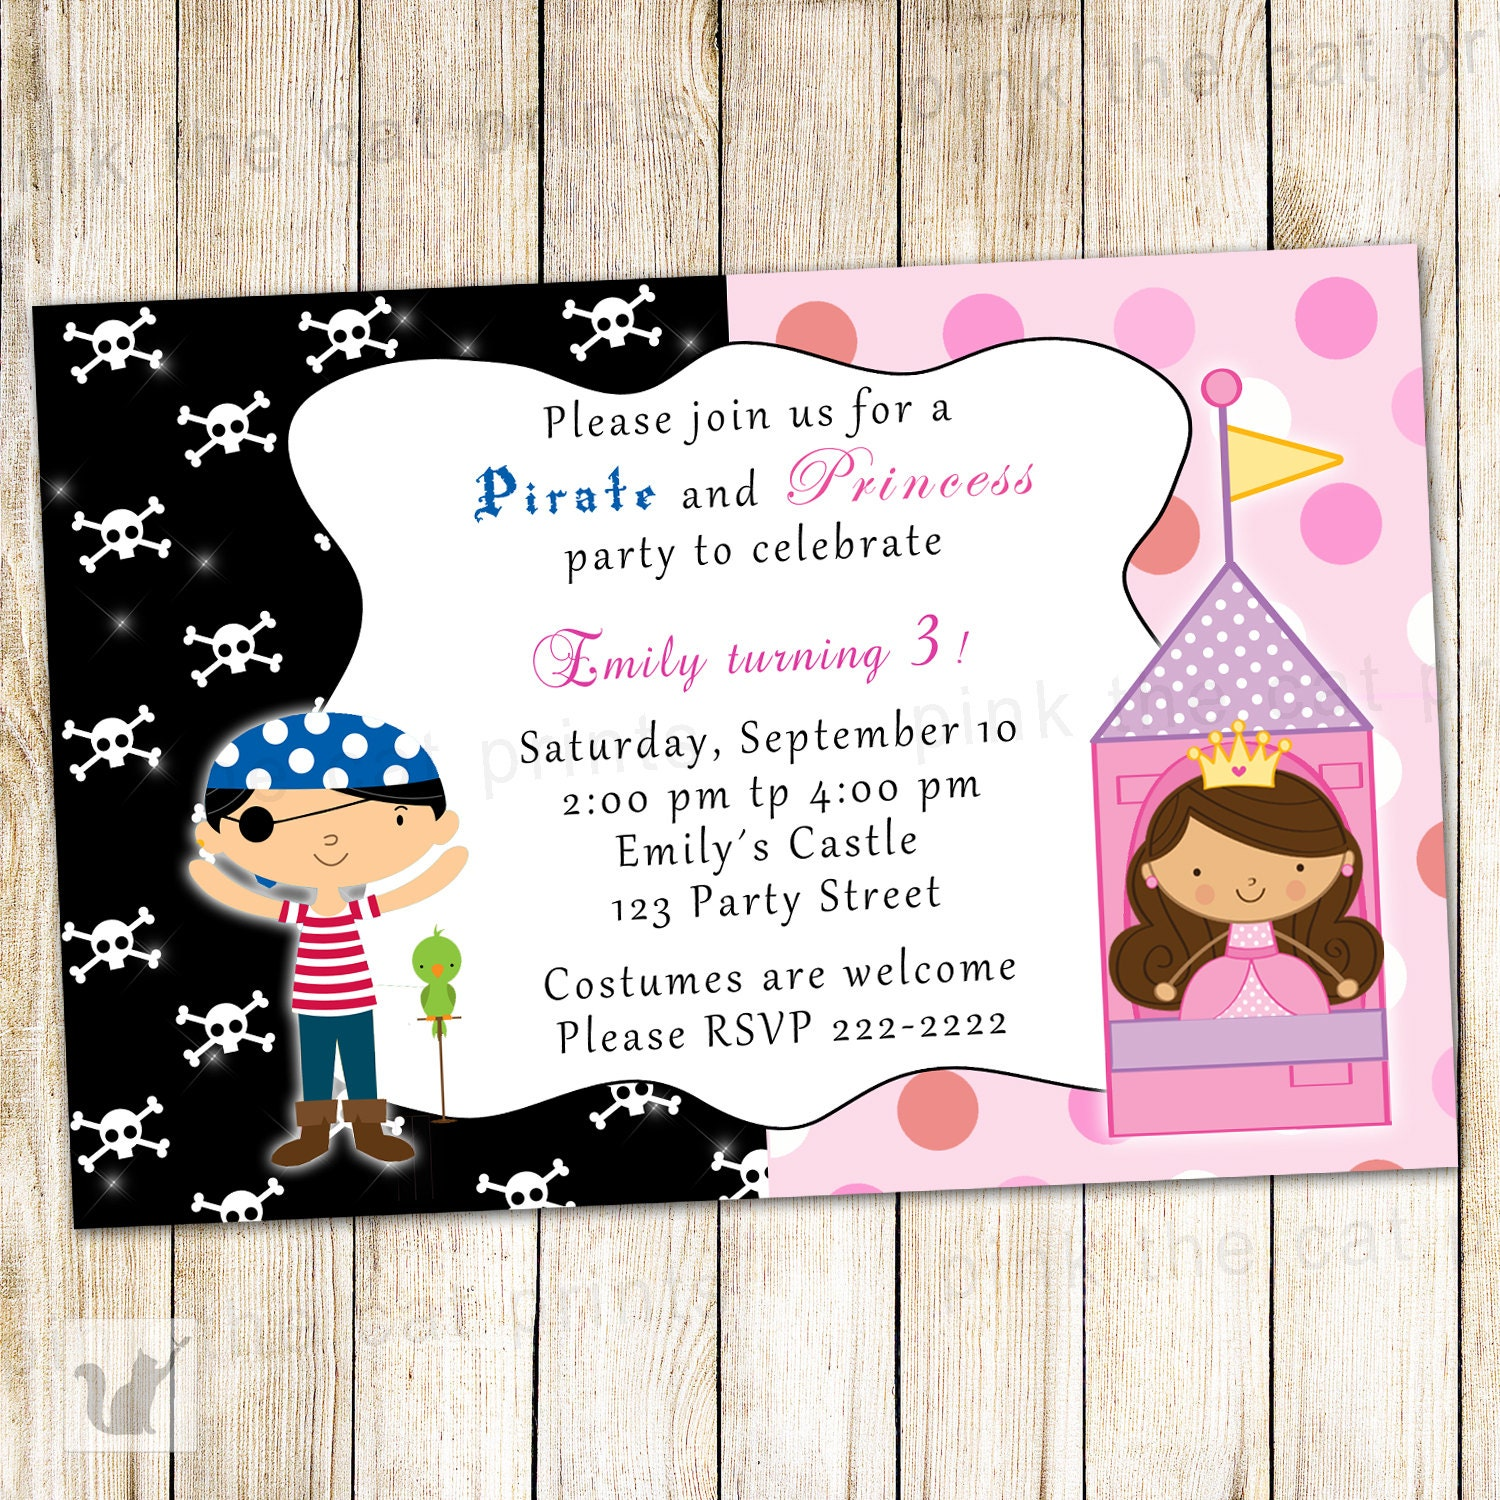 Pirate Princess Birthday Invitation Card Kids Party Invite